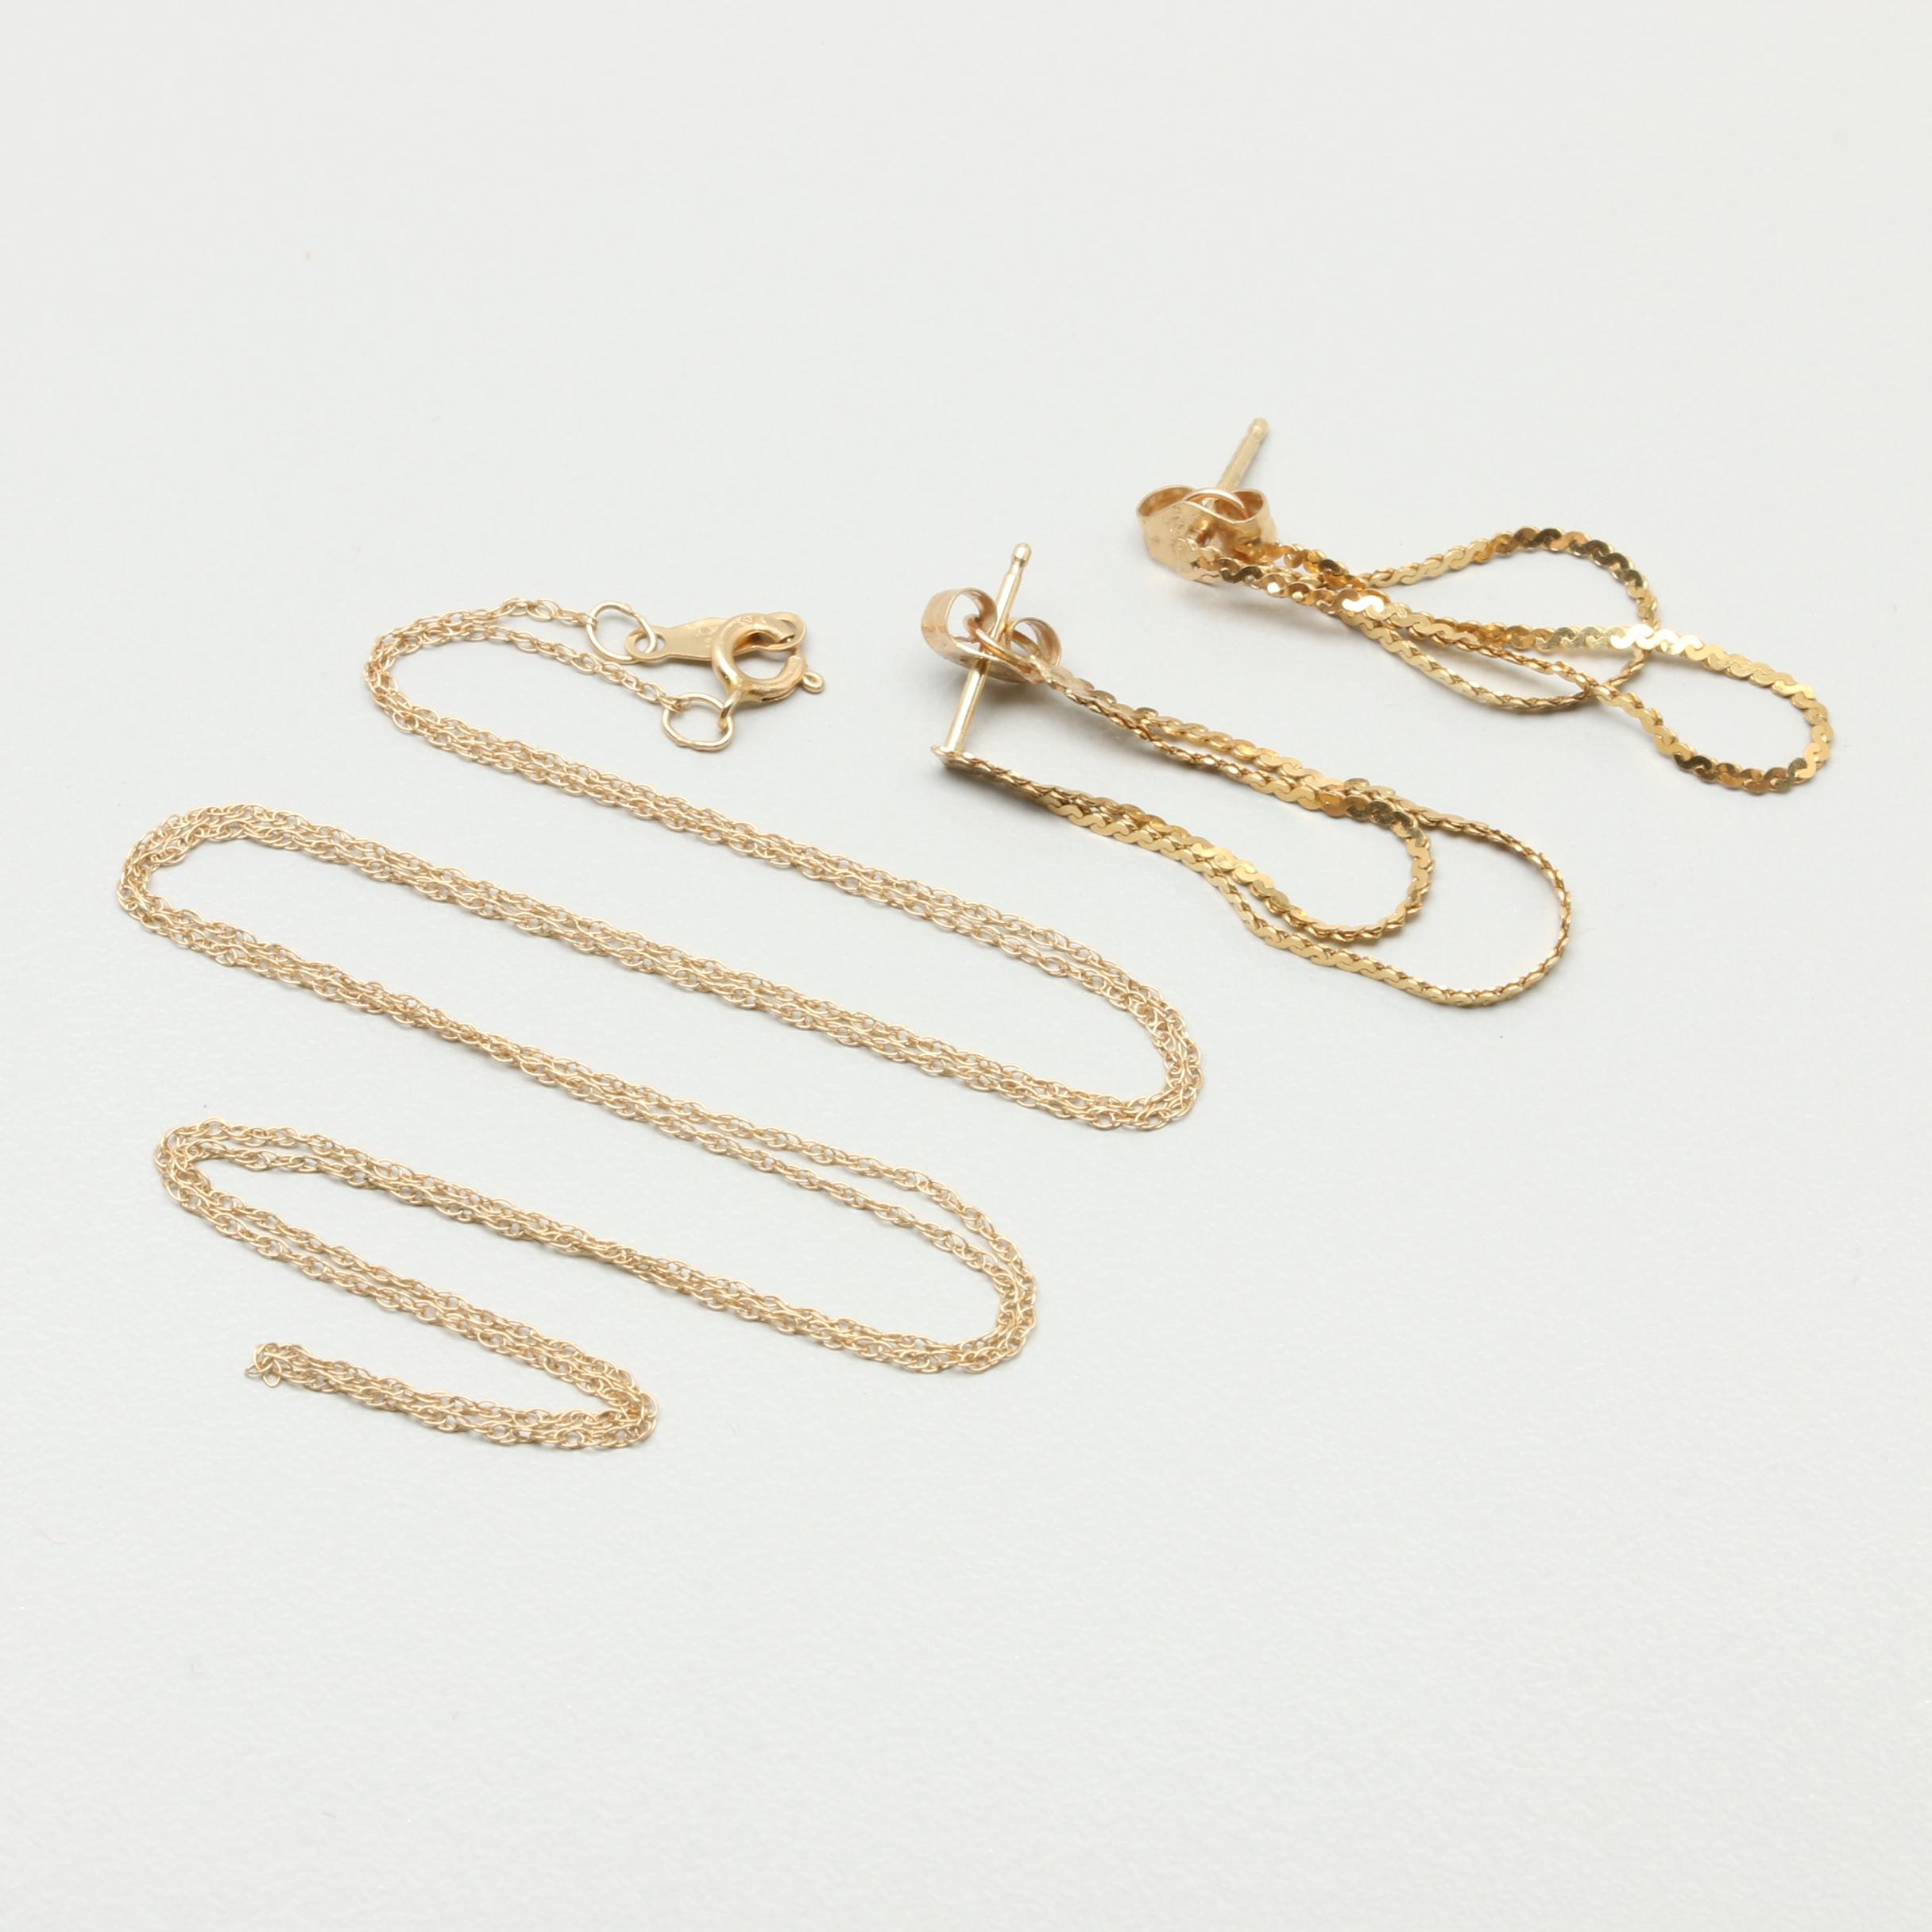 14K Yellow Gold Chain Necklace and Earrings.